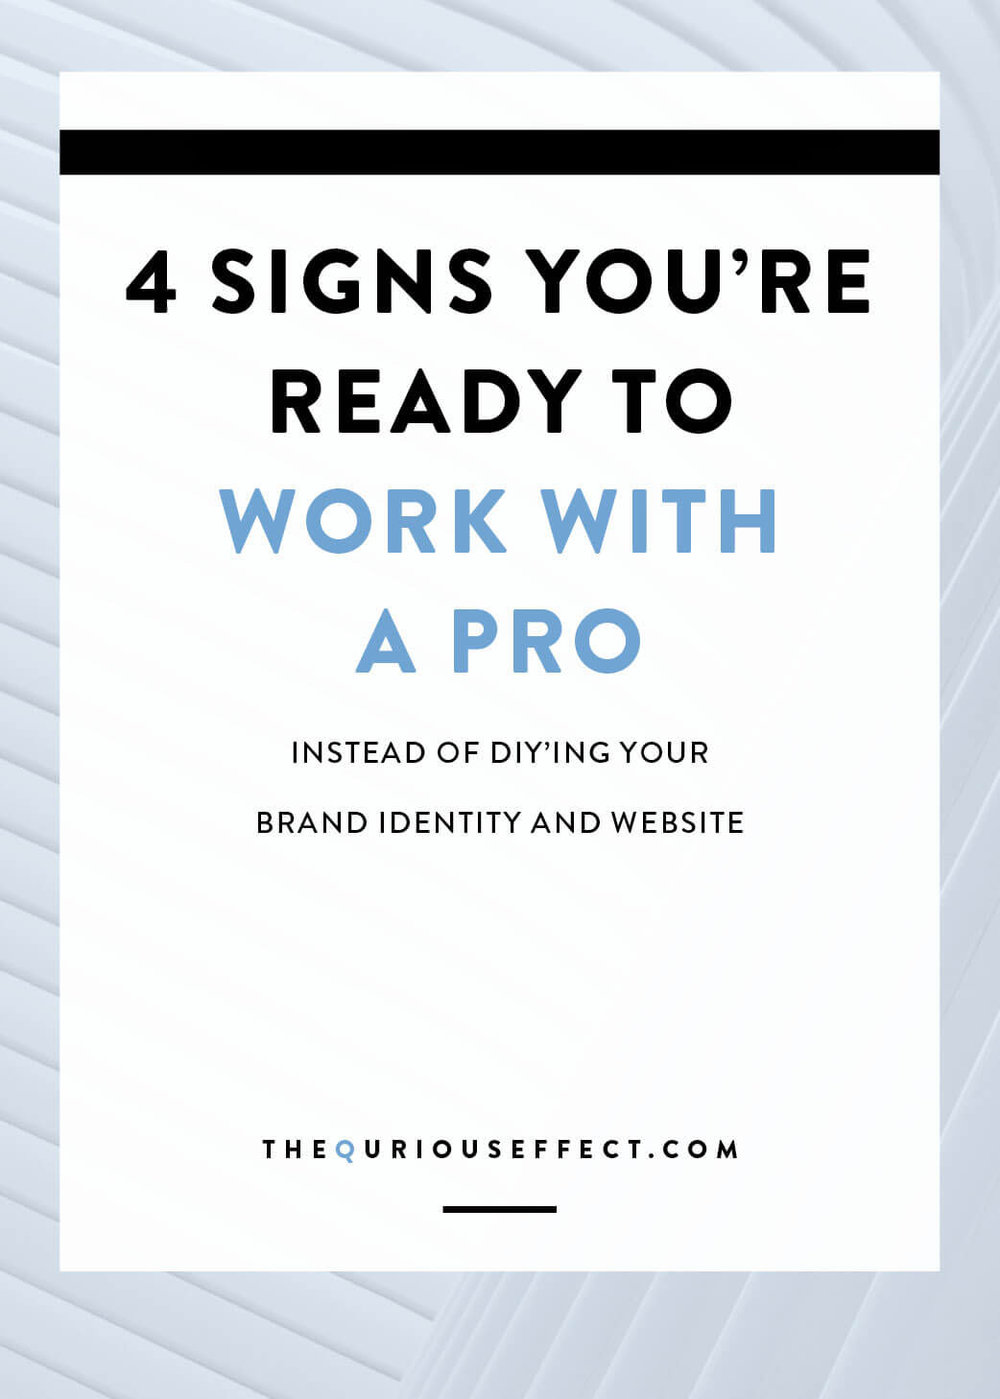 4 signs you're ready to work with a pro on your brand and Squarespace website by The Qurious Effect.